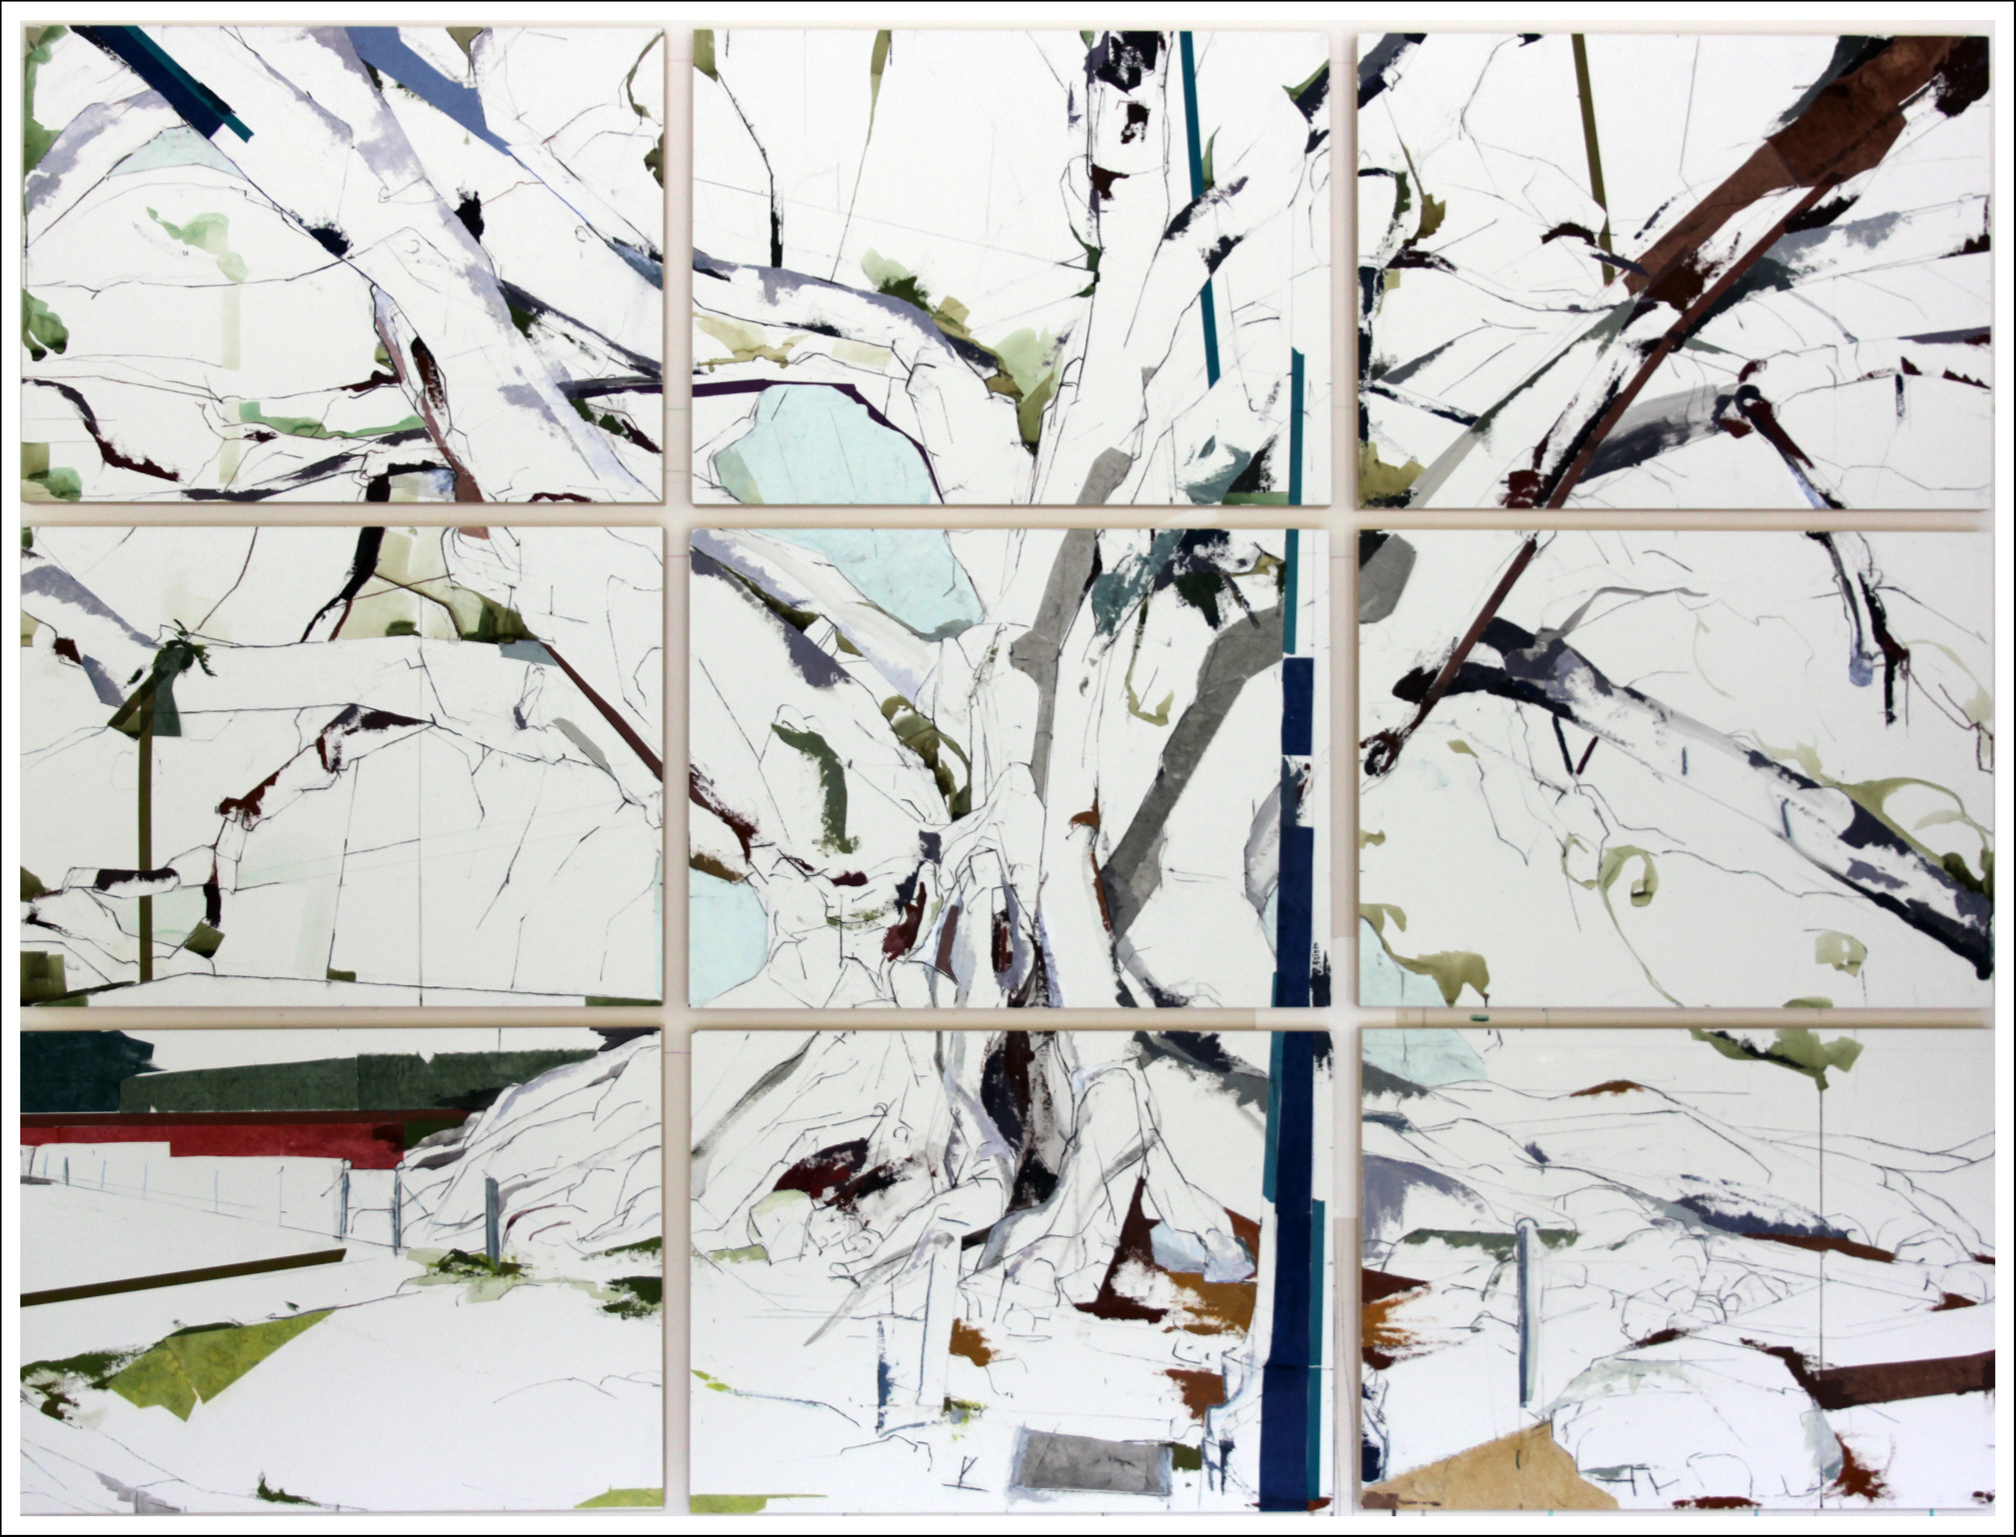 "34° 24' 49.45"" N  119° 41' 38.15""    W Moreton Bay Fig SB II  , 2013, Mixed-media on paper  (66 inches x 90 inches) - each panel 22 inches x 30 inches)"